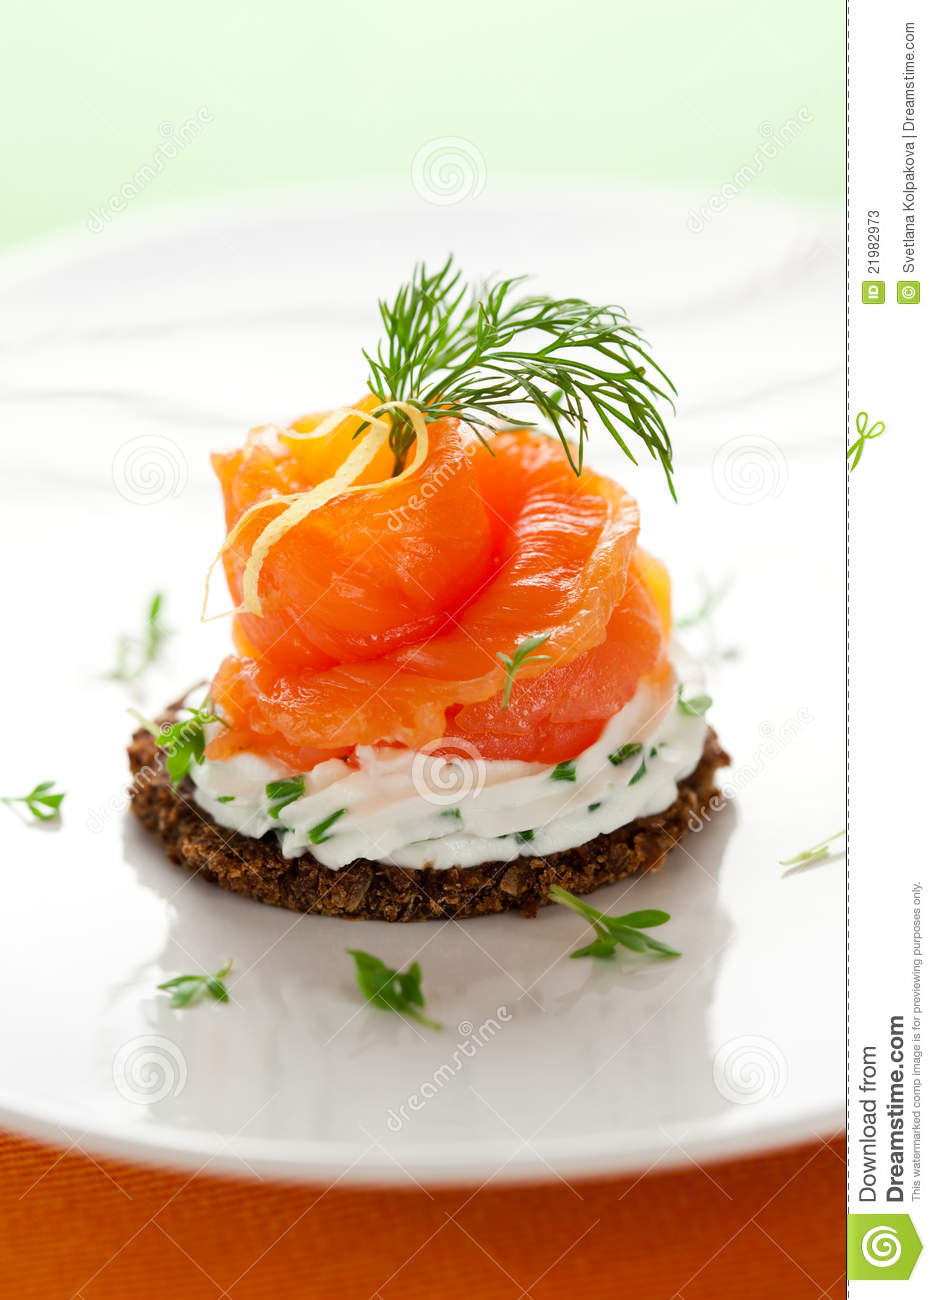 Canape with smoked salmon stock photos image 21982973 for Smoked salmon cream cheese canape